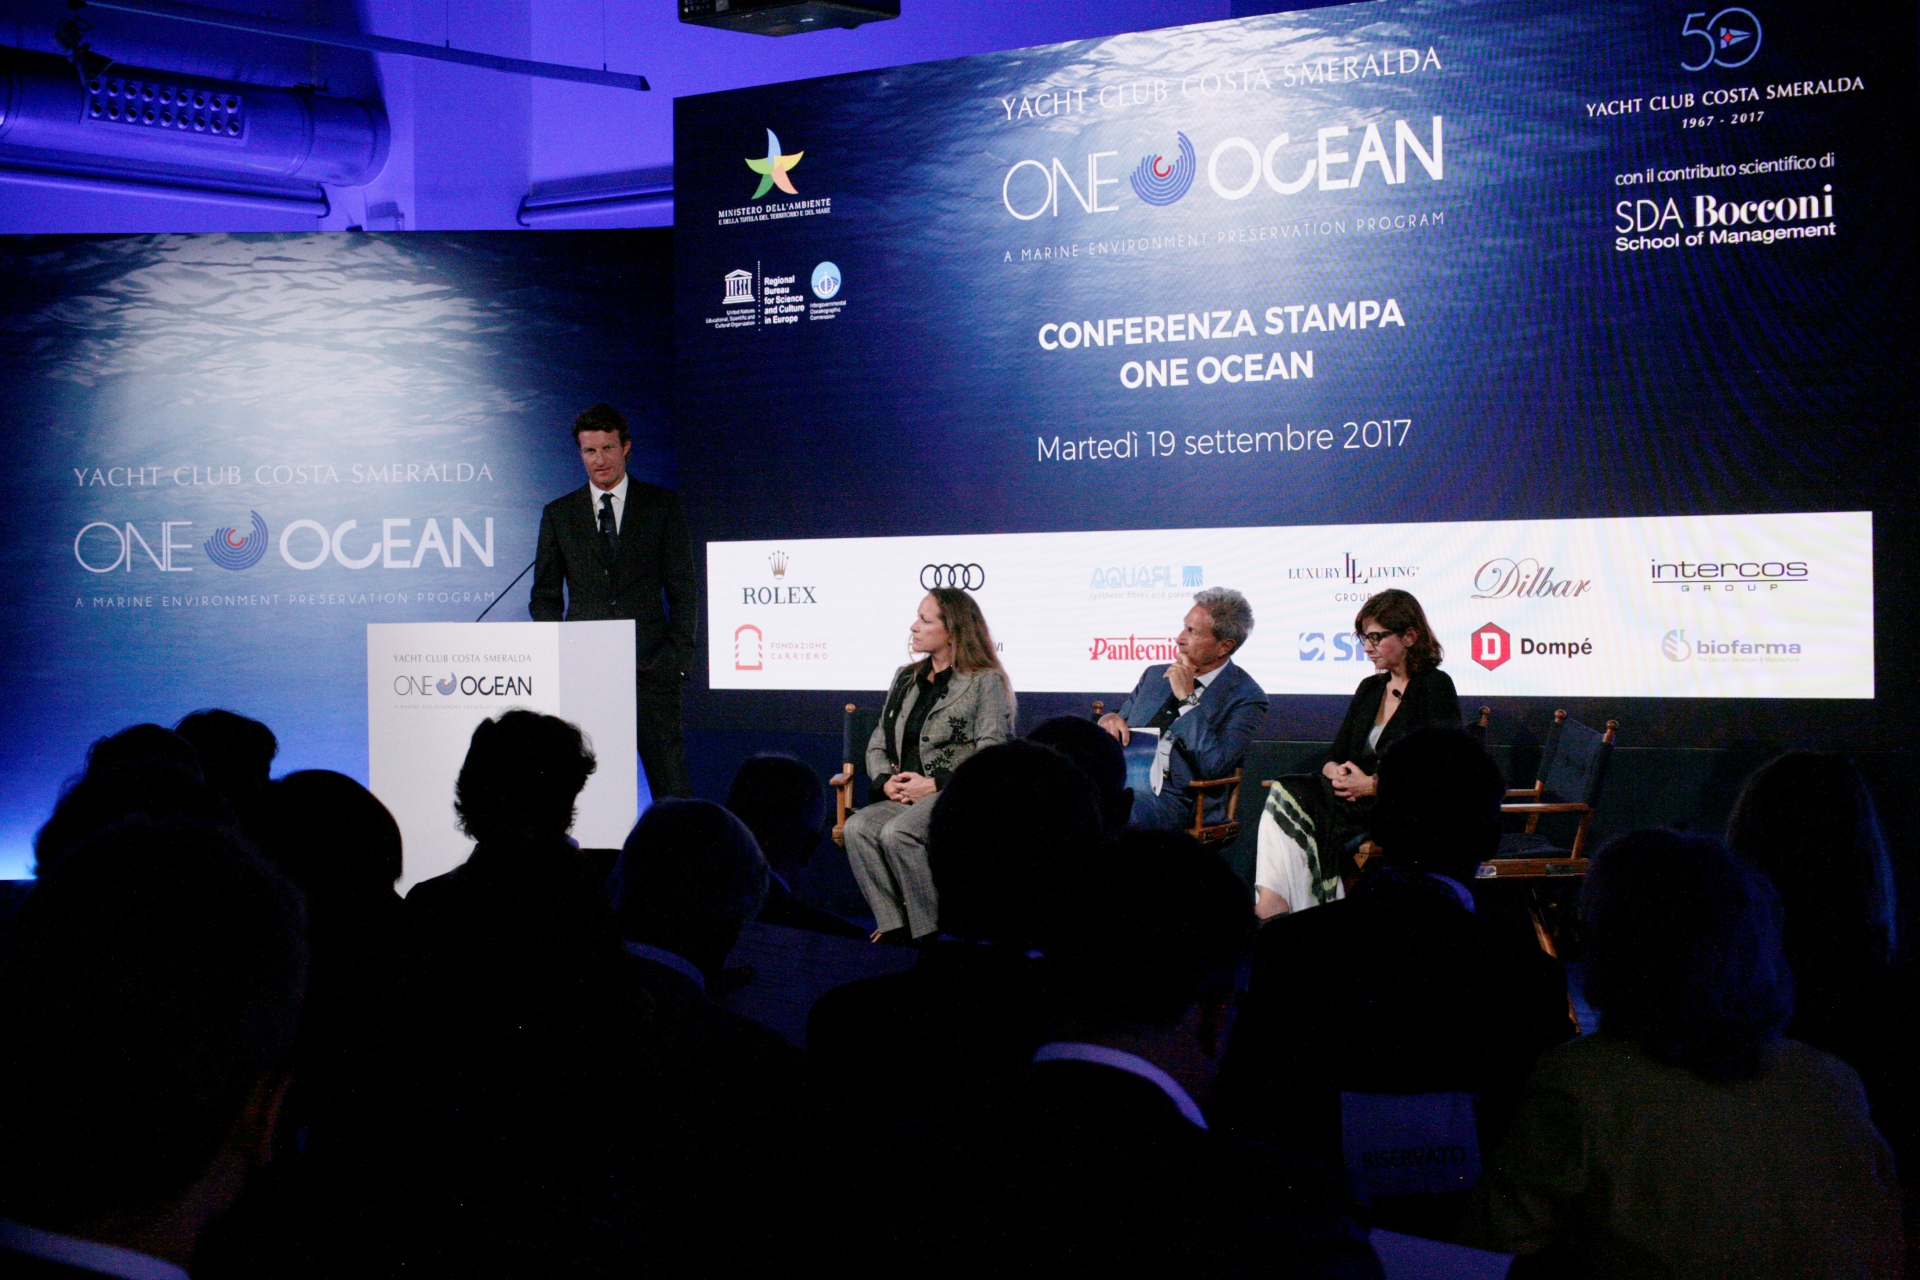 Press Conference One Ocean Forum - NEWS - Yacht Club Costa Smeralda